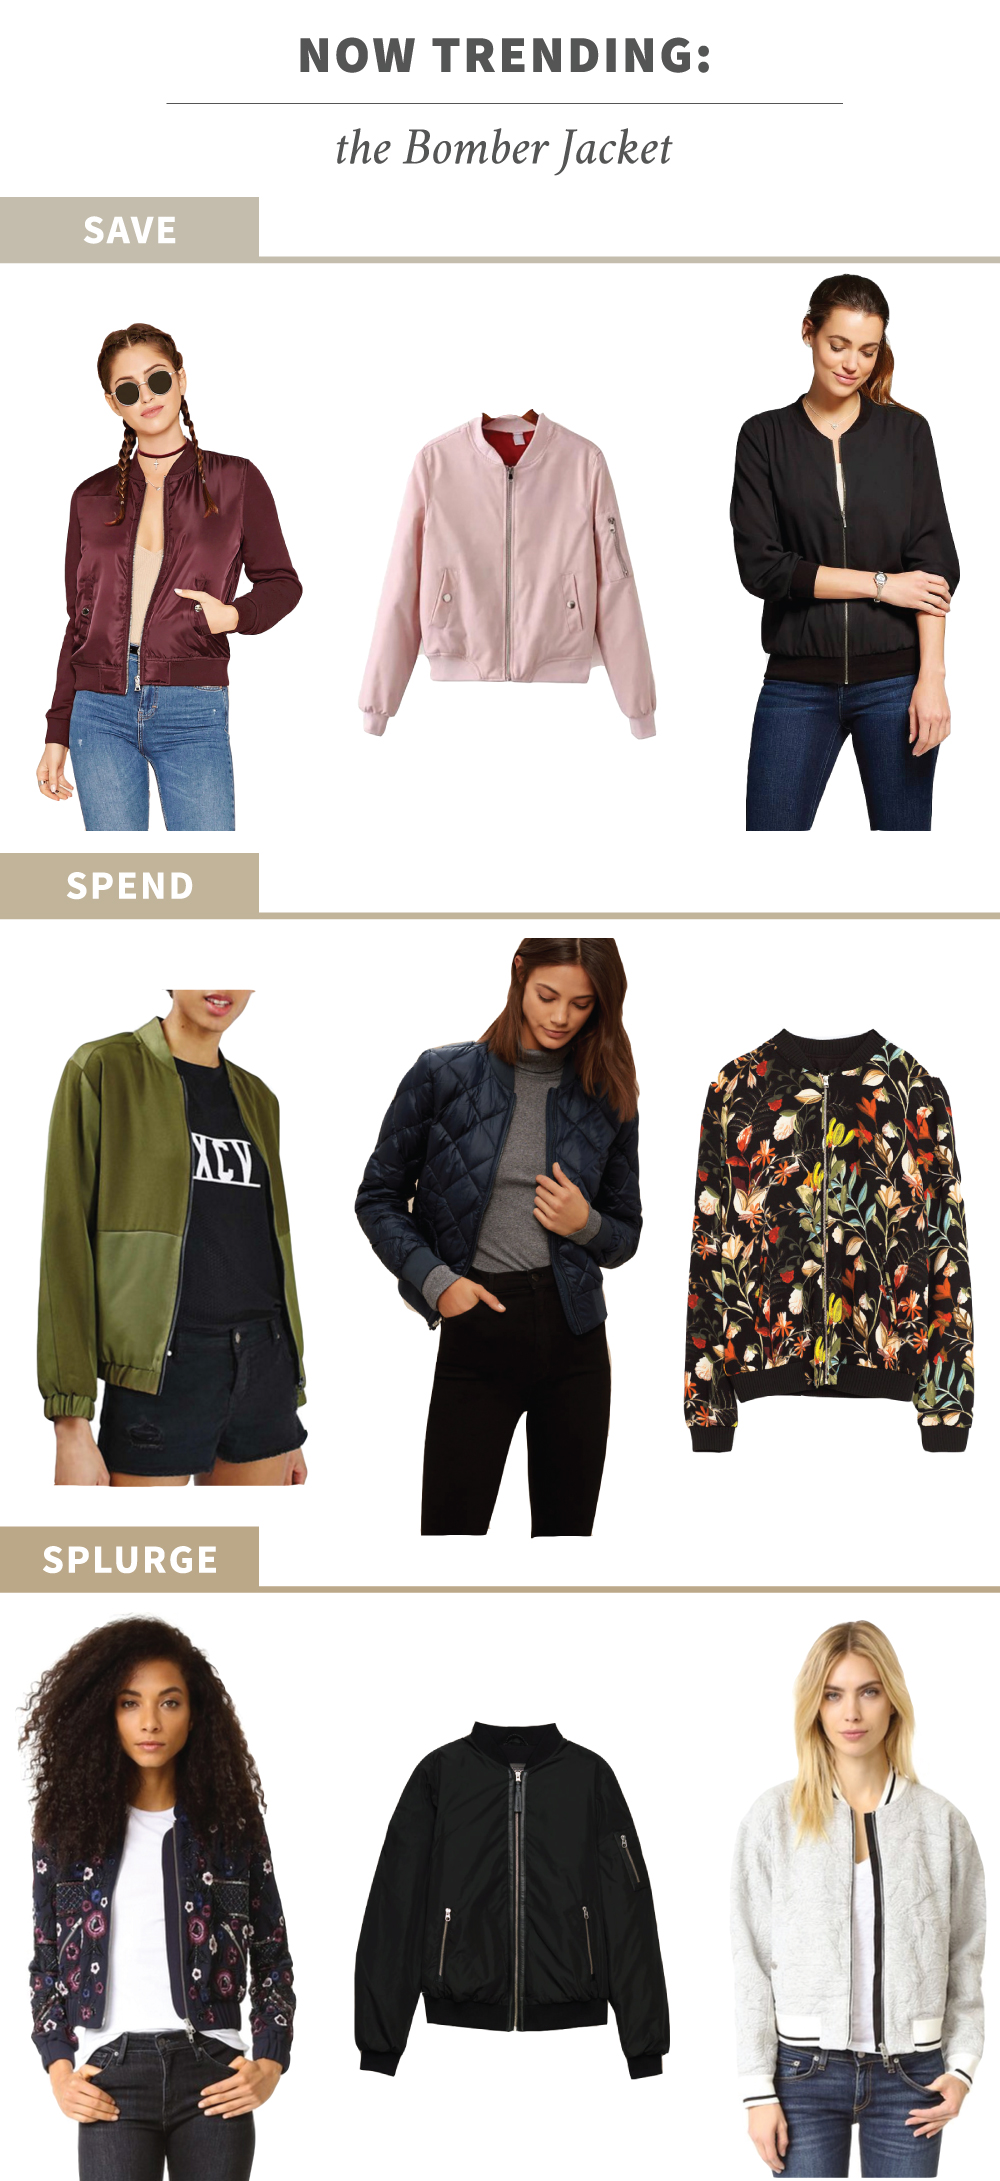 Save, Spend, Splurge: Bomber Jacket